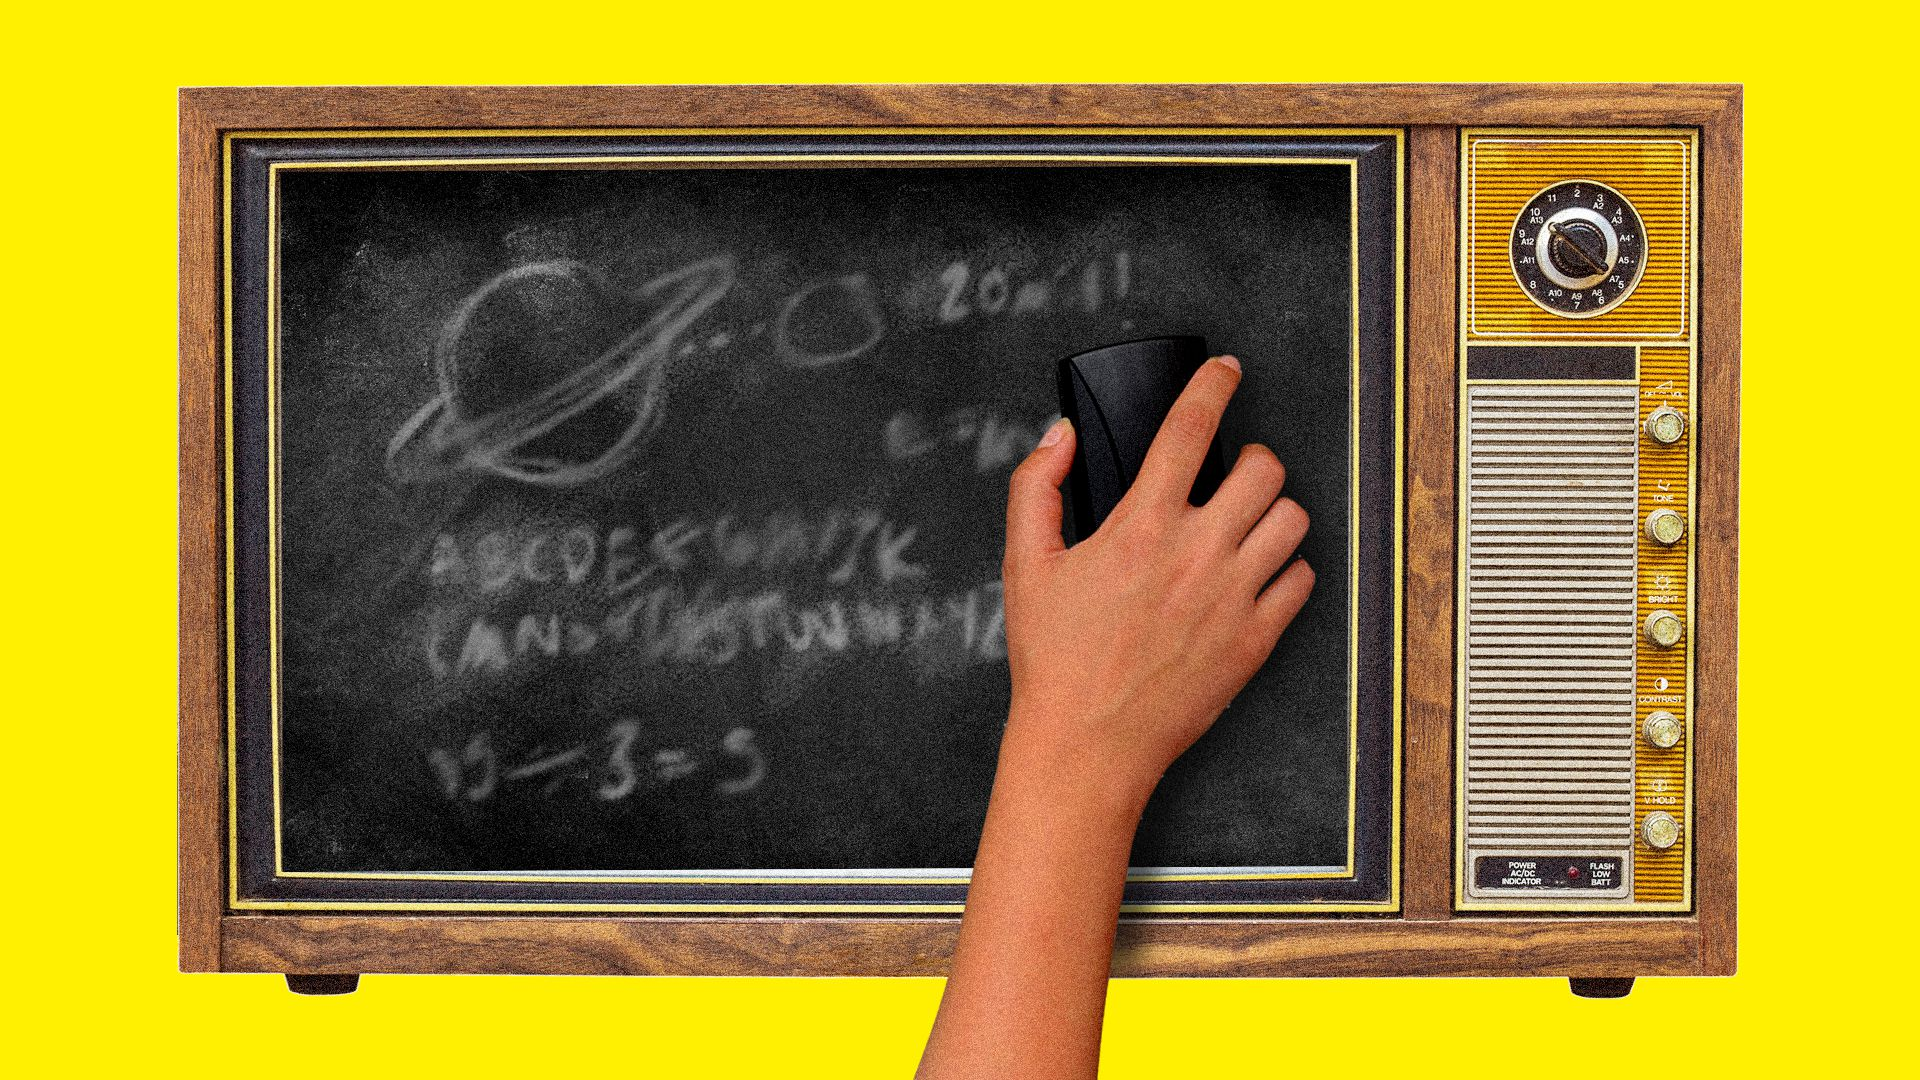 A child's hand erases a TV screen that looks like a chalkboard